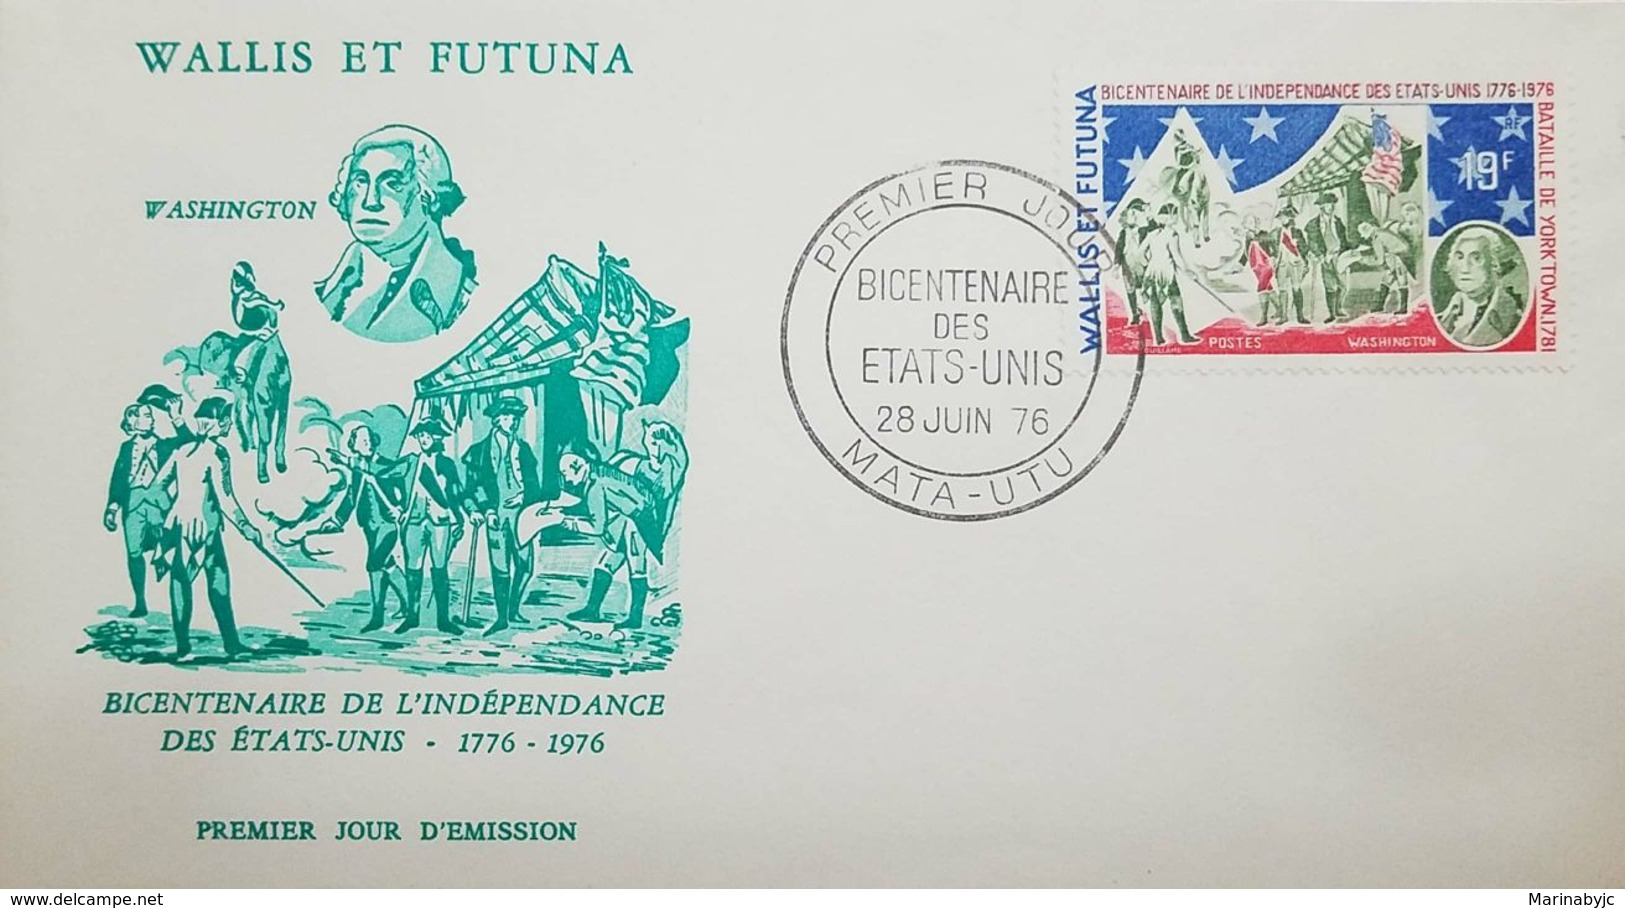 L) 1976 WALLIS AND FUTUNA, WASHINGTON, BICENTENARY OF THE INDEPENDENCE OF THE UNITED STATES, BATTLE OF YORKTOWN, FDC - FDC